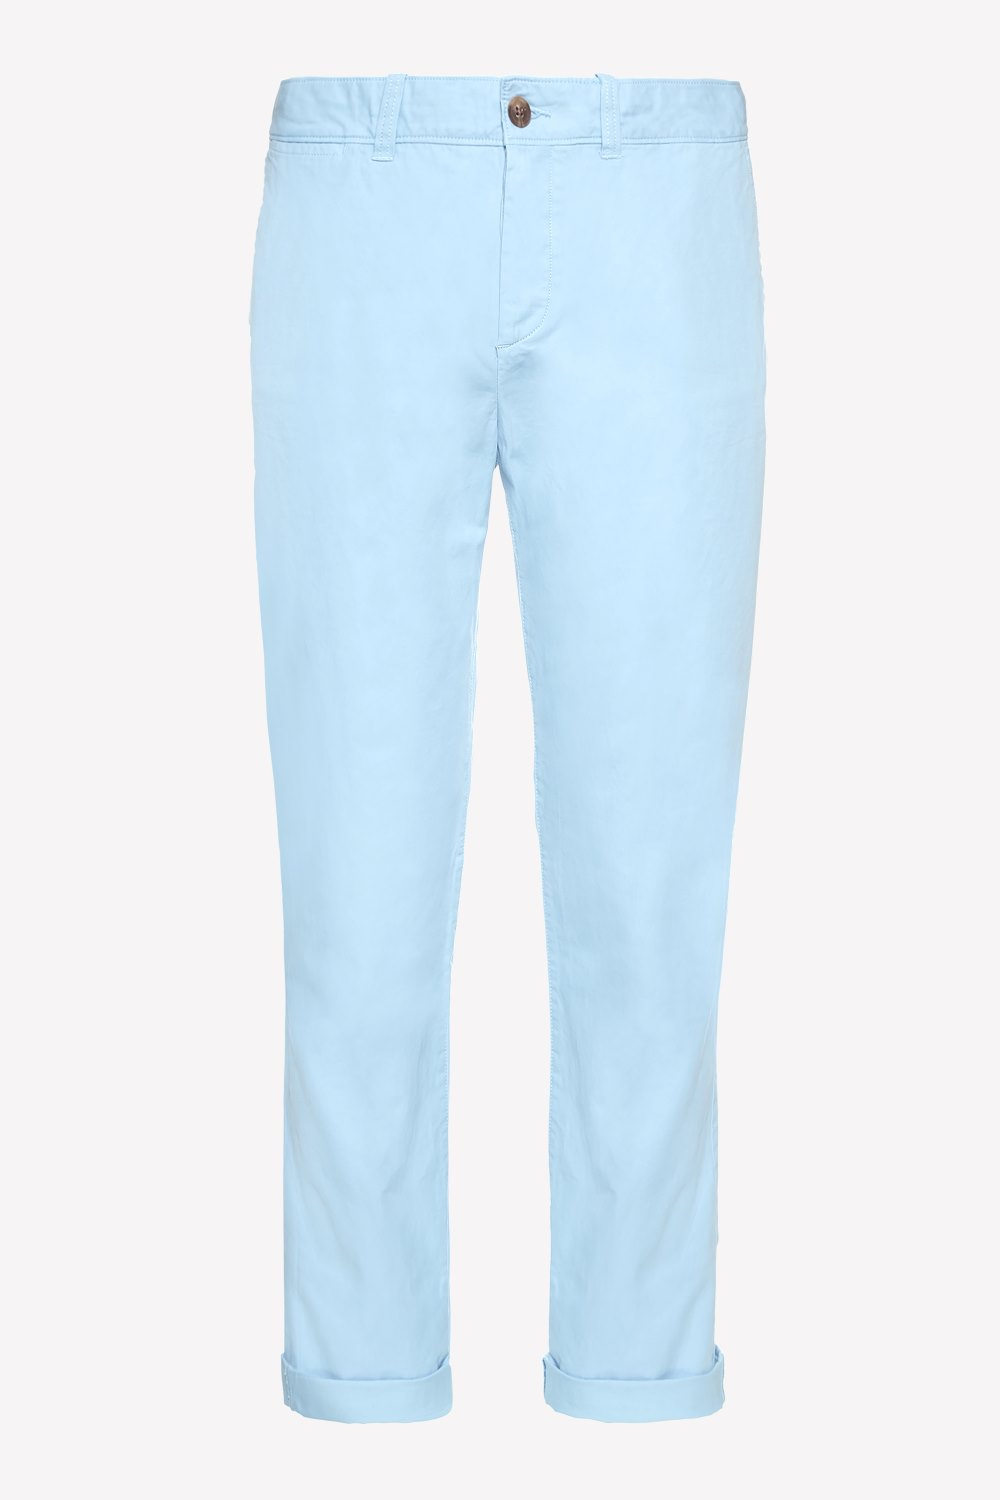 Jack Wills Pale Blue BARBERRY SLIM CHINOS